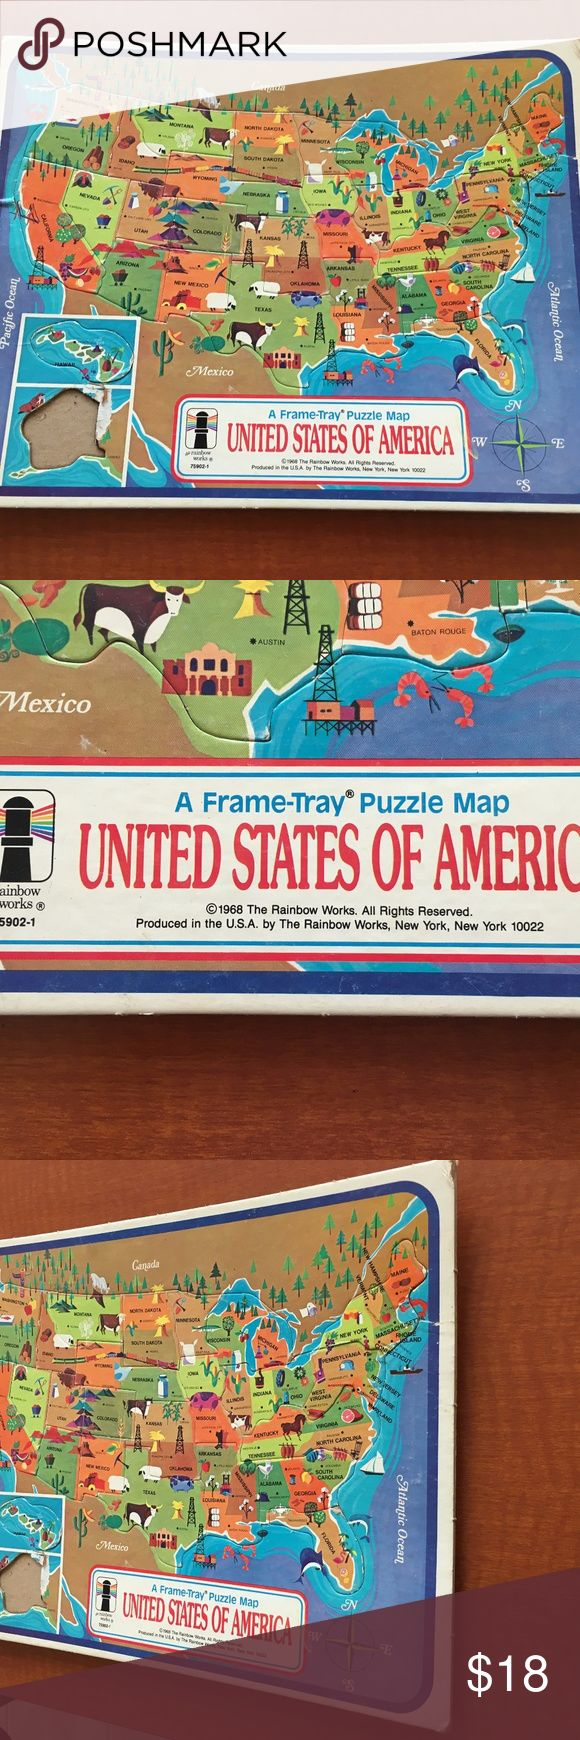 RARE 1968 United States of America Map VTG Puzzle RARE 1968 United States of America Map Vintage Frame-Tray Puzzle -Rainbow Works  VINTAGE 1968 USA MAP PUZZLE TRAY FRAME-TRAY  THIS WAS MINE GROWING UP.  IT HAS BEEN IN A BOX FOR MANY YEARS.  IN OVERALL GOOD CONDITION - IT IS JUST MISSING ALASKA!!!!  MINE IS THEREFORE UNUSUAL!!!  COMES FROM SMOKE FREE AND PET FREE ENVIRONMENT!!! Other